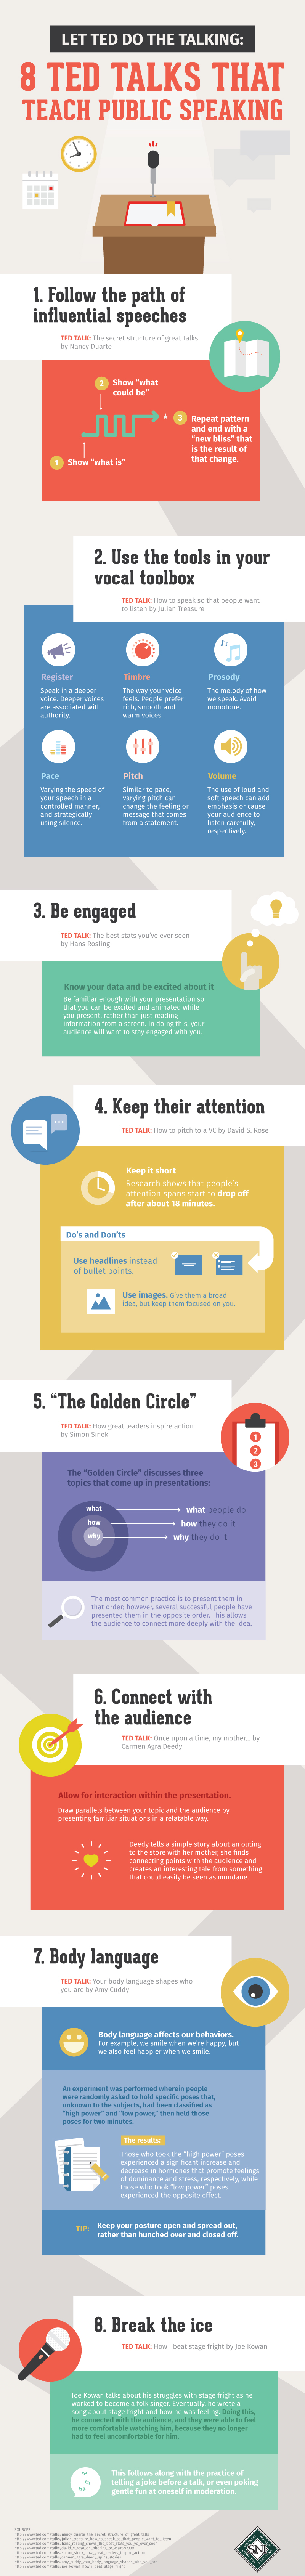 8 Good TED Talks to Help You With Public Speaking Anxiety (Infographic)